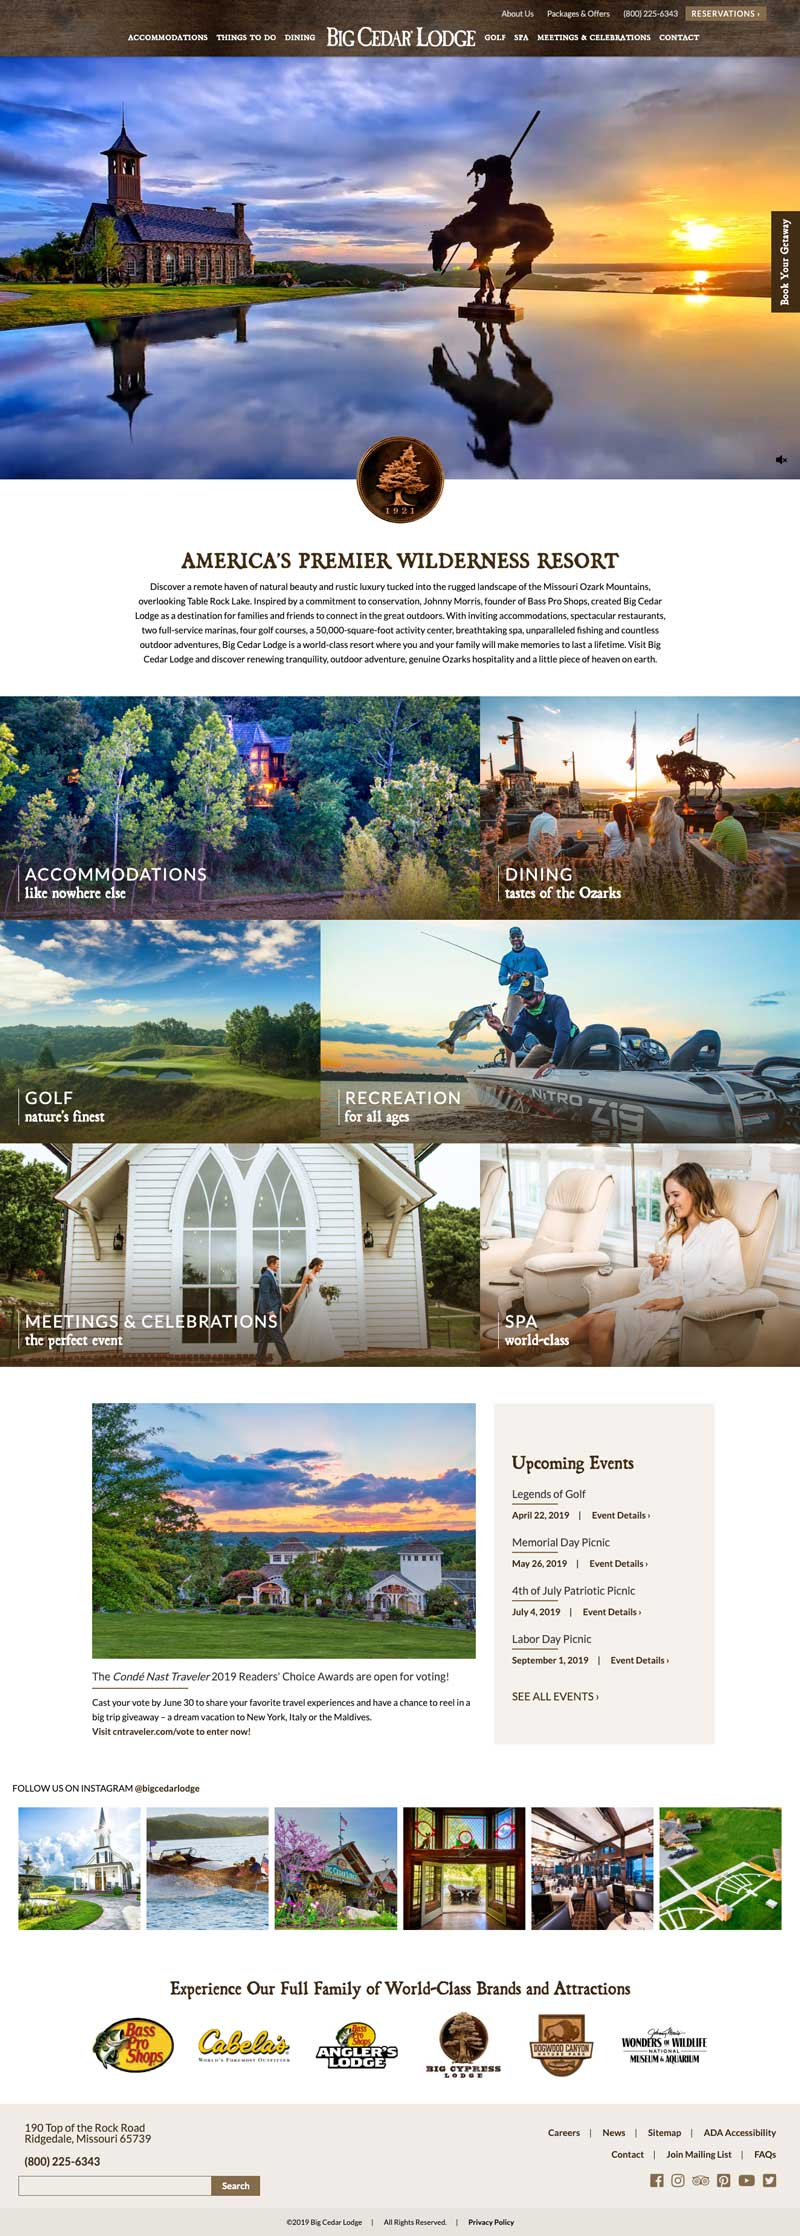 Big Cedar Lodge Homepage